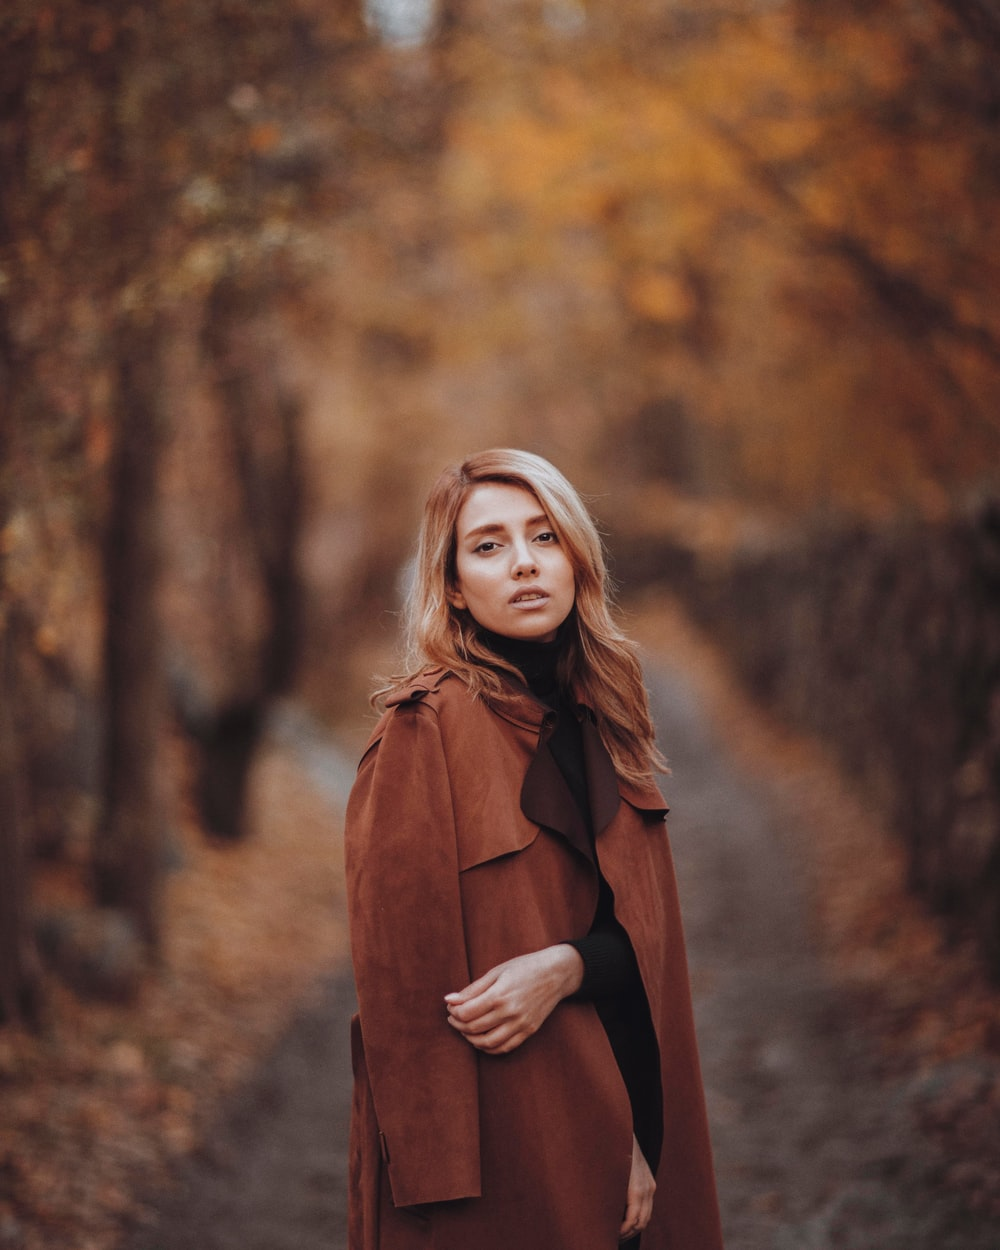 selective focus photography of woman wearing coat